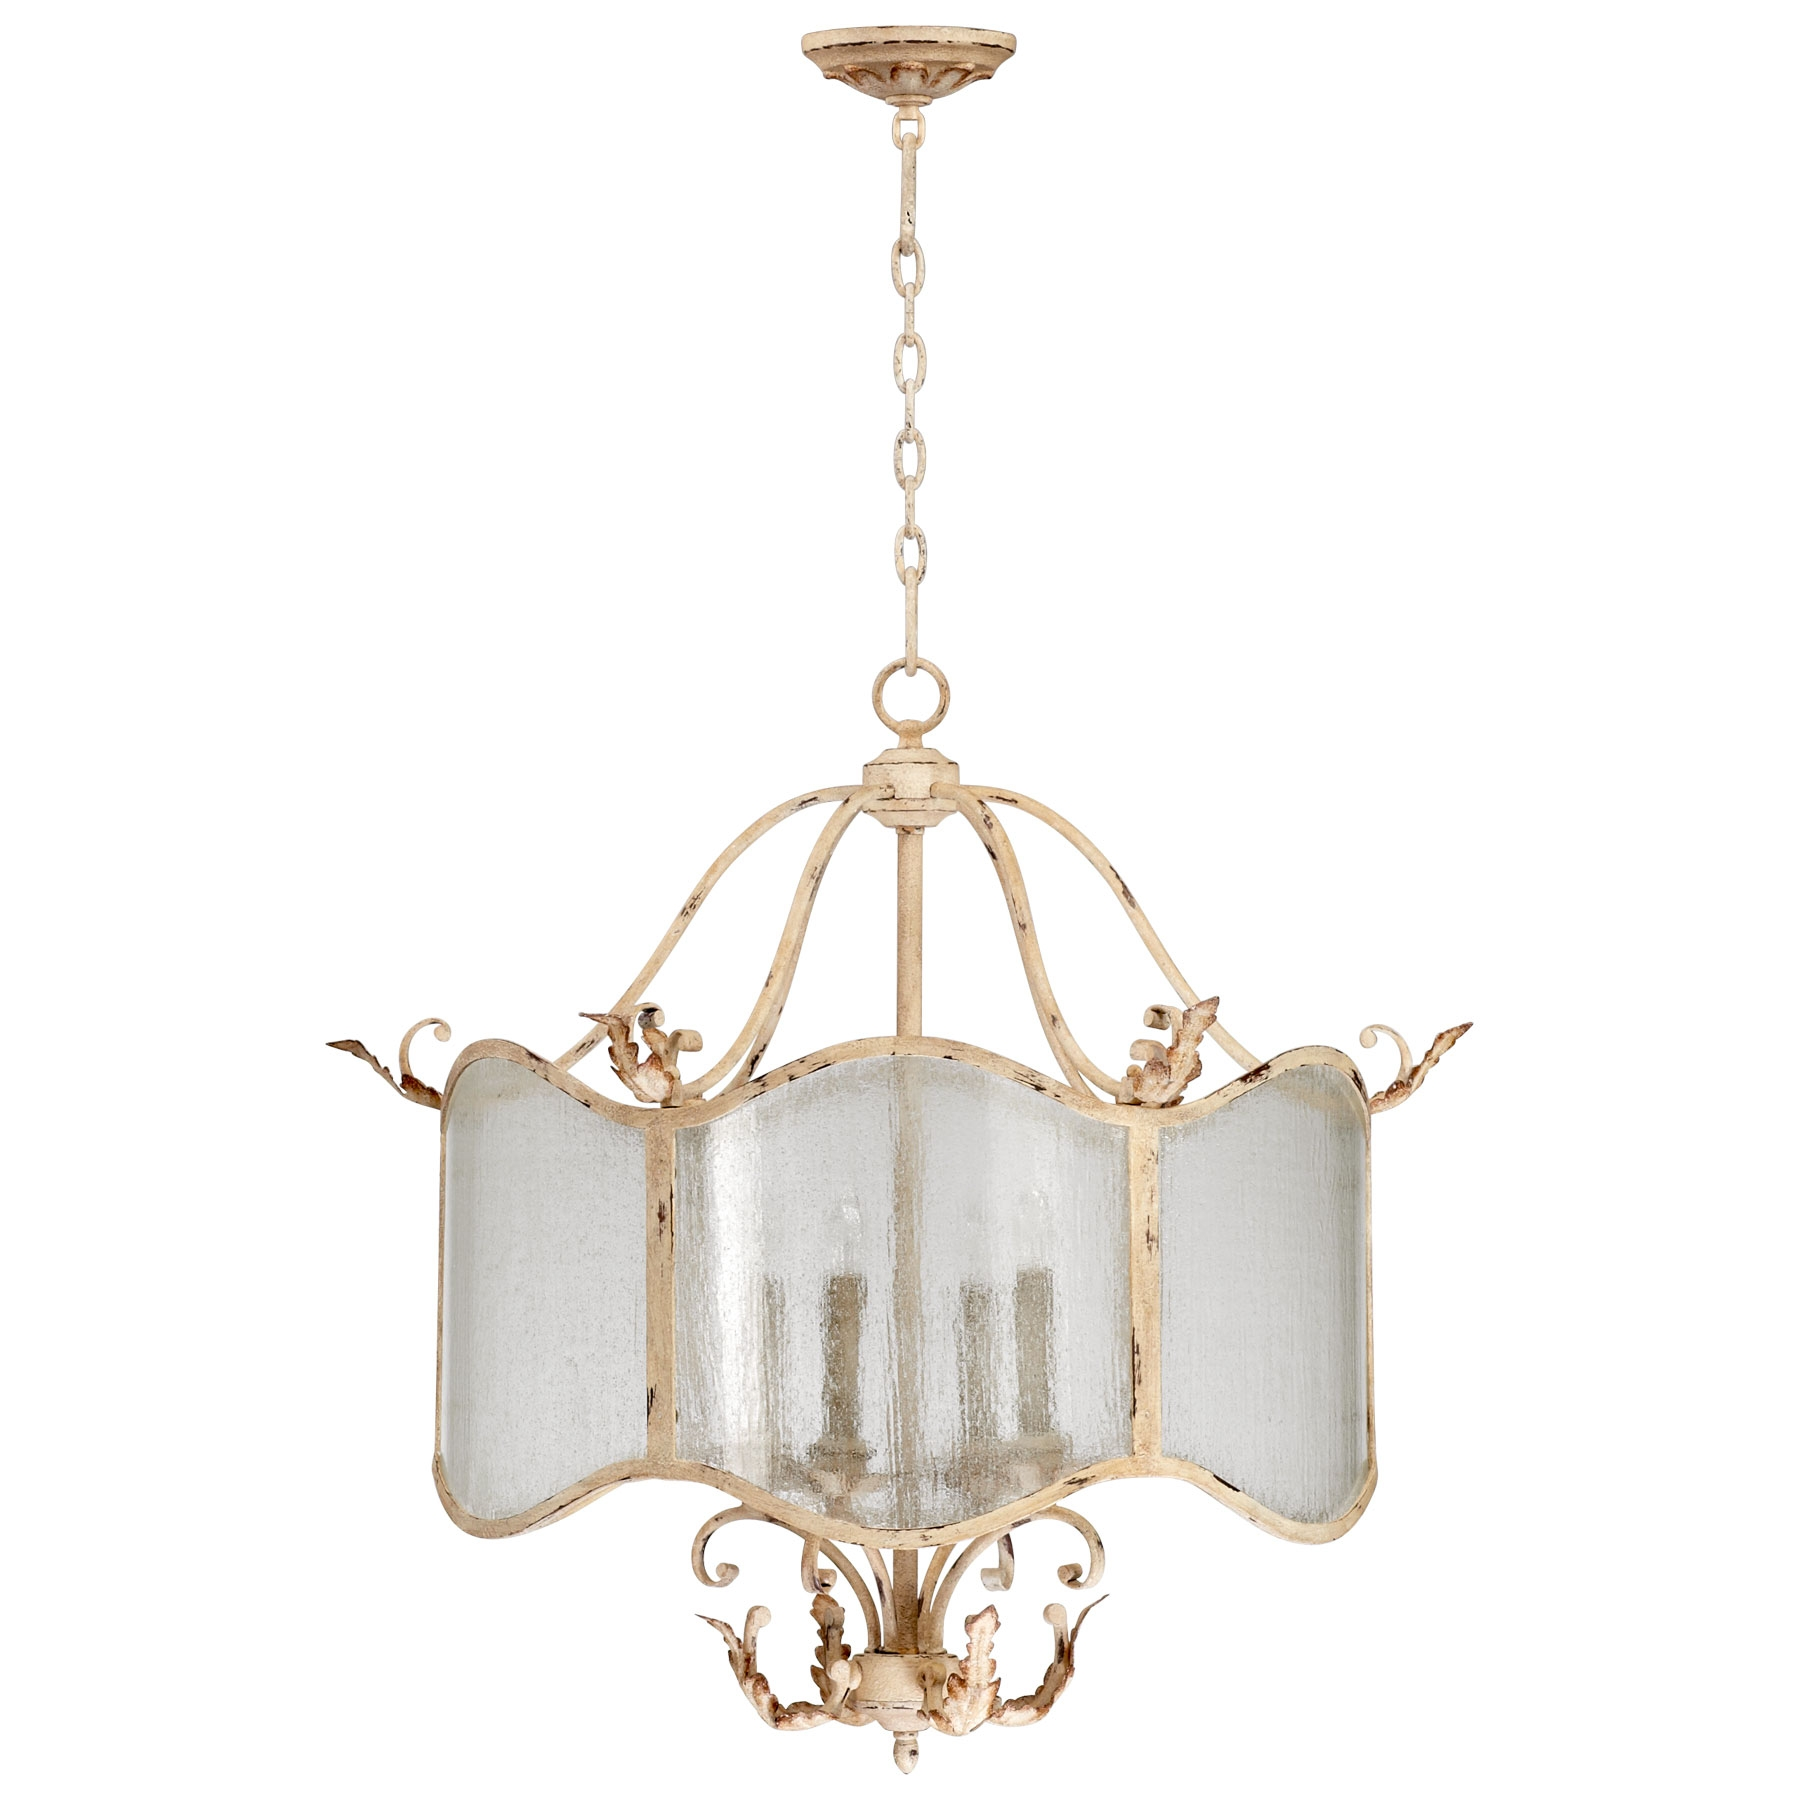 Vintage French Country Chandelier With Glass Lamp Shades And Iron With Regard To French Glass Chandelier (Image 15 of 15)